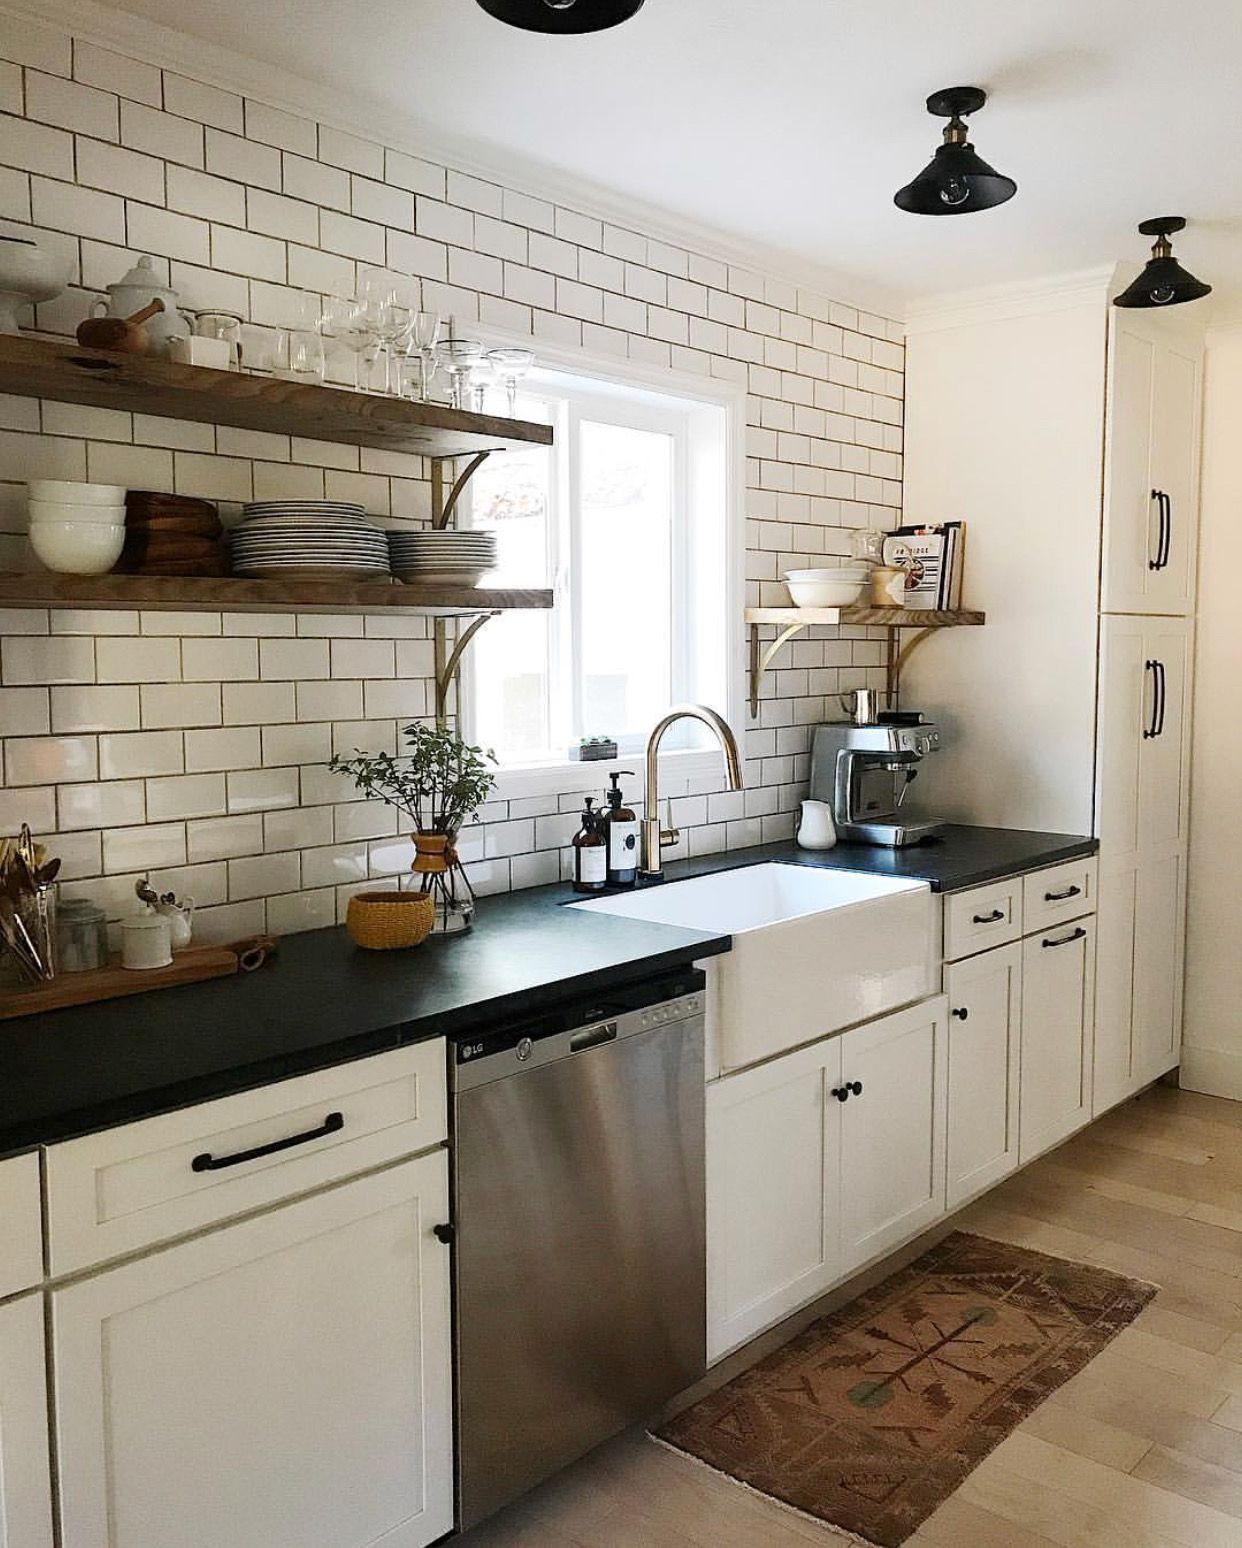 tiled walls open shelving kitchen remodel small galley kitchen design small galley kitchen on kitchen remodel ideas id=23963